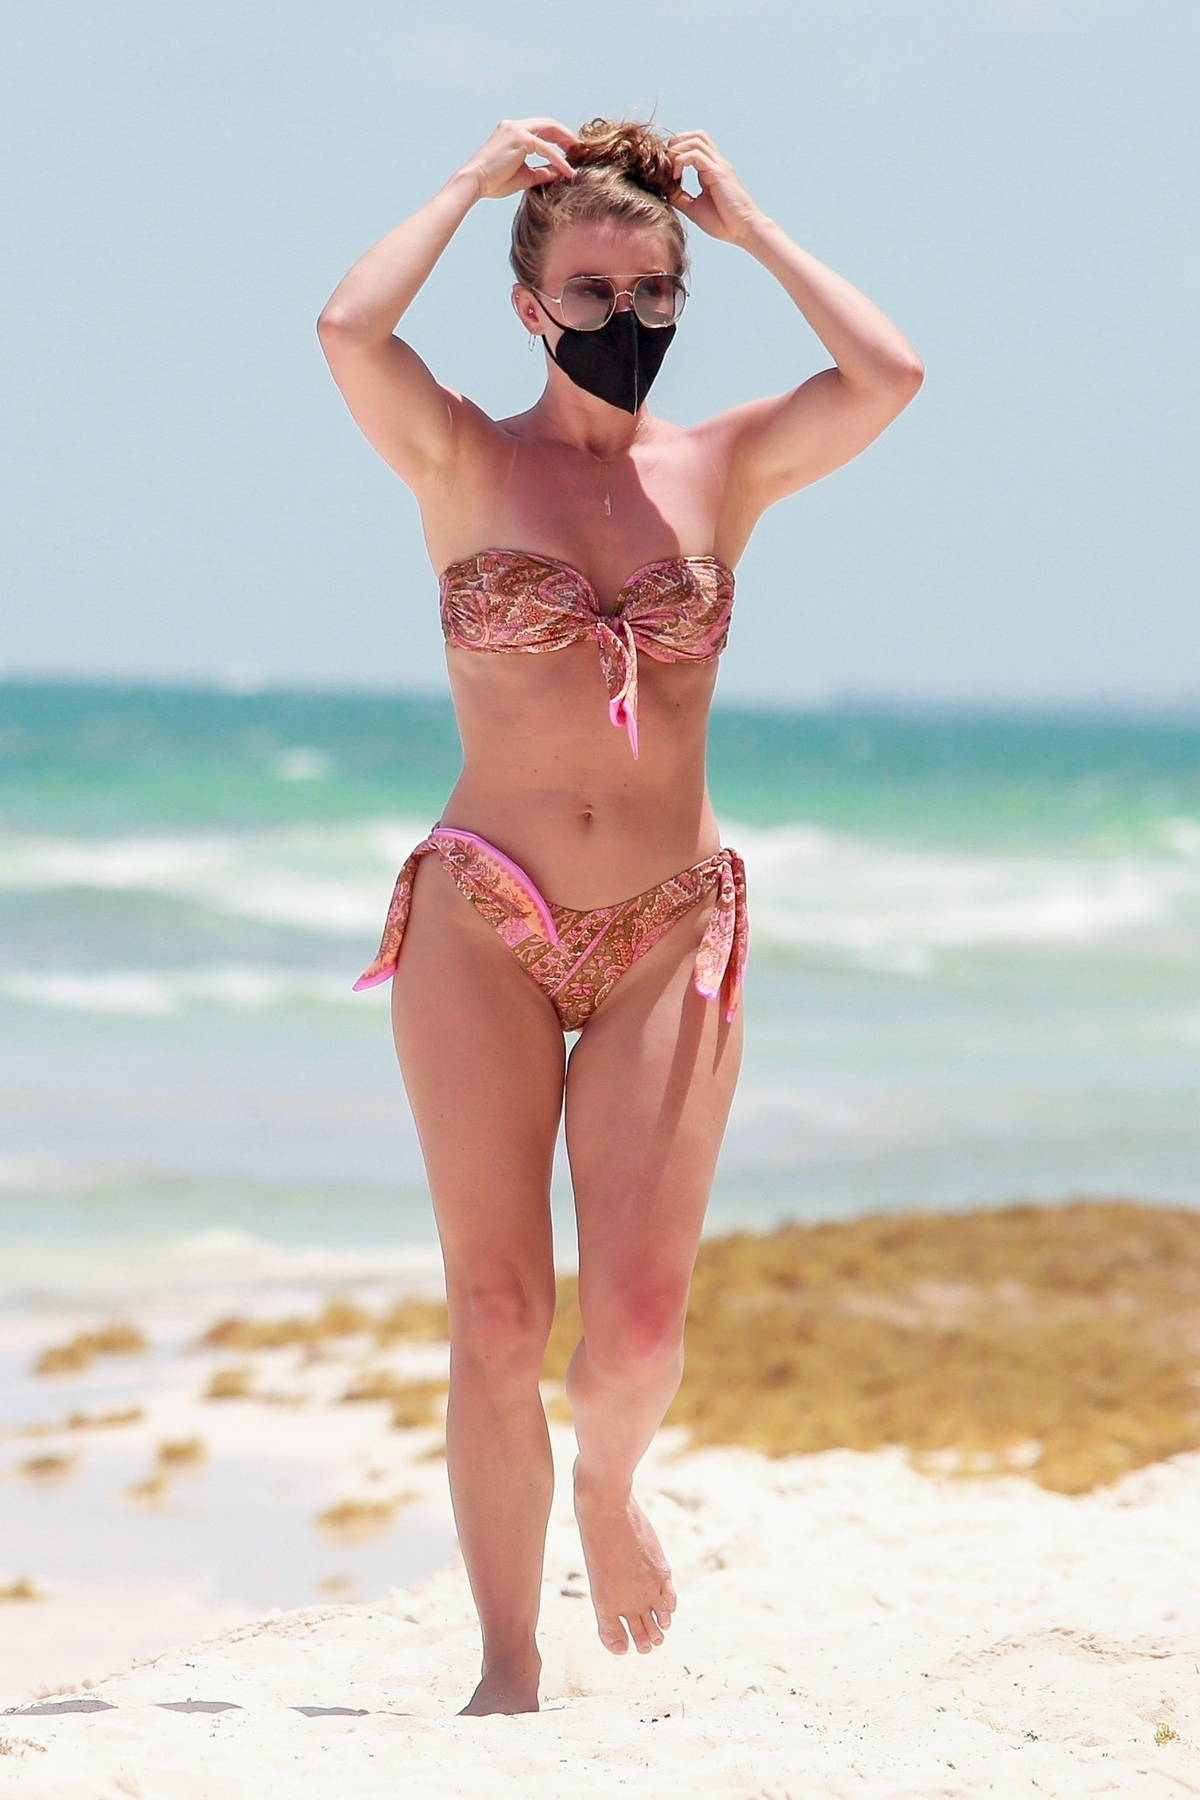 Julianne Hough shows off her toned body in a printed pink bikini while enjoying a beach day in Tulum, Mexico